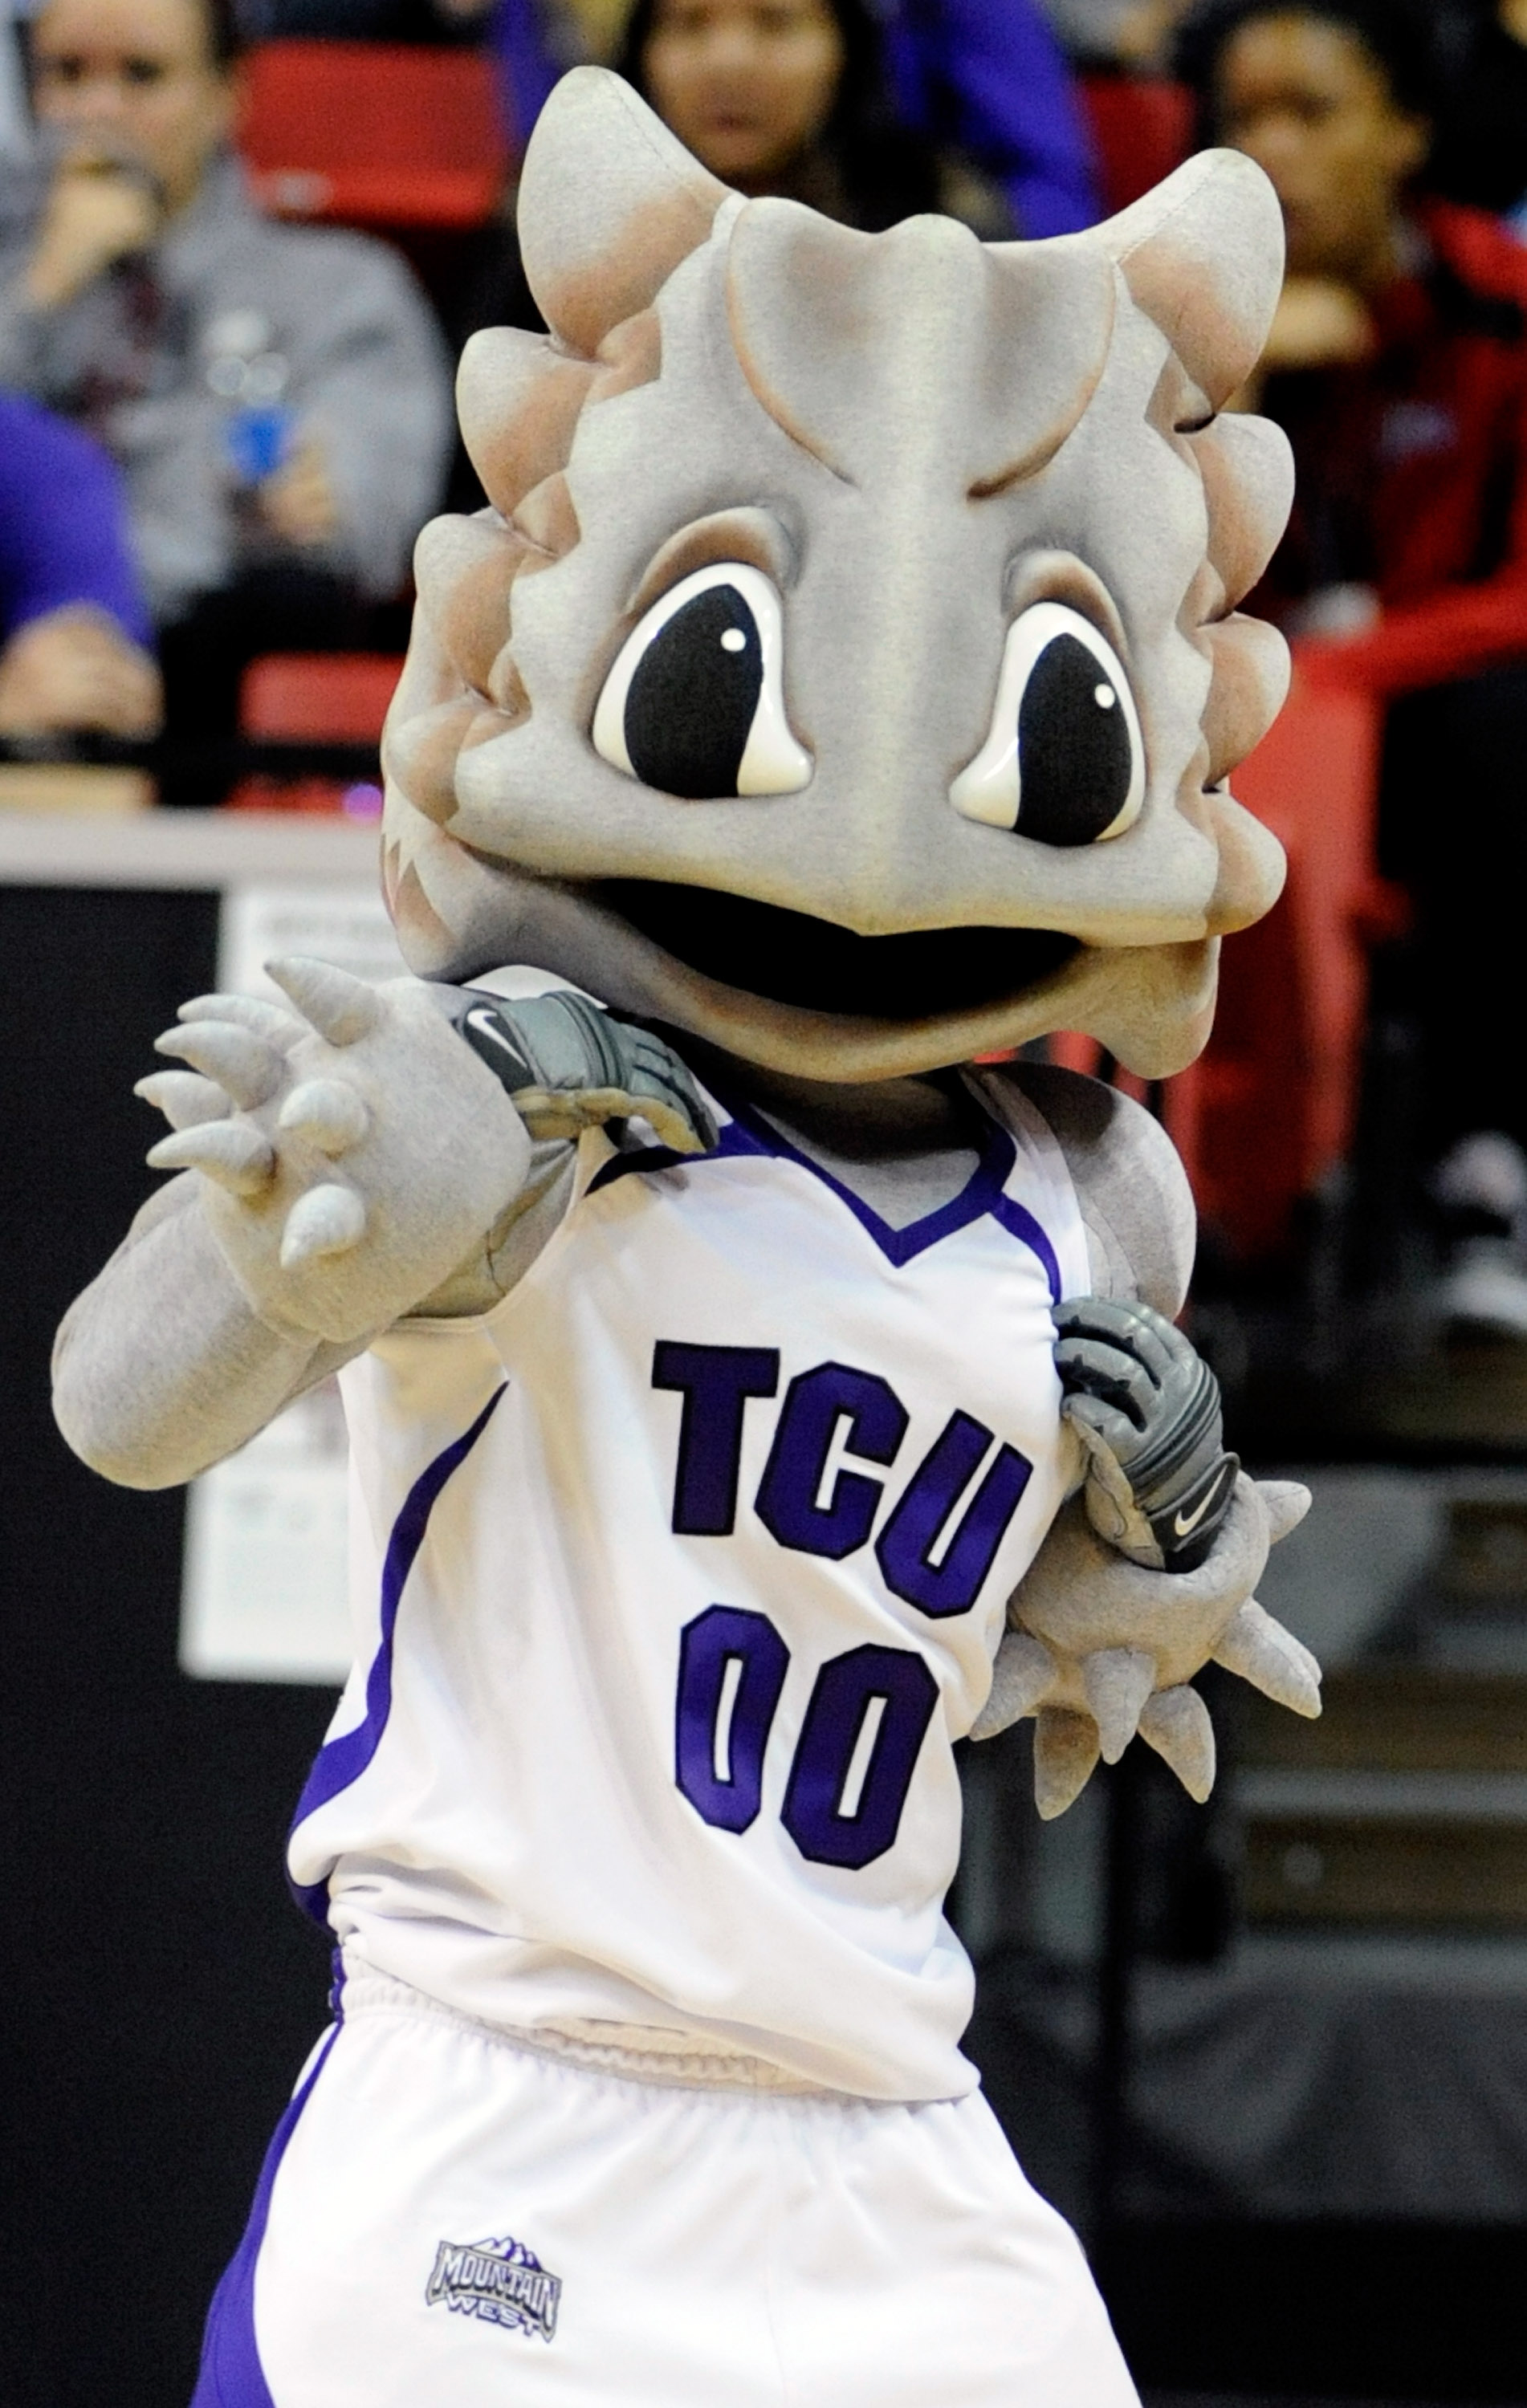 LAS VEGAS - MARCH 11:  The Texas Christian University Horned Frogs mascot Superfrog performs during a quarterfinal game against the Brigham Young University Cougars at the Conoco Mountain West Conference Basketball tournament at the Thomas & Mack Center M